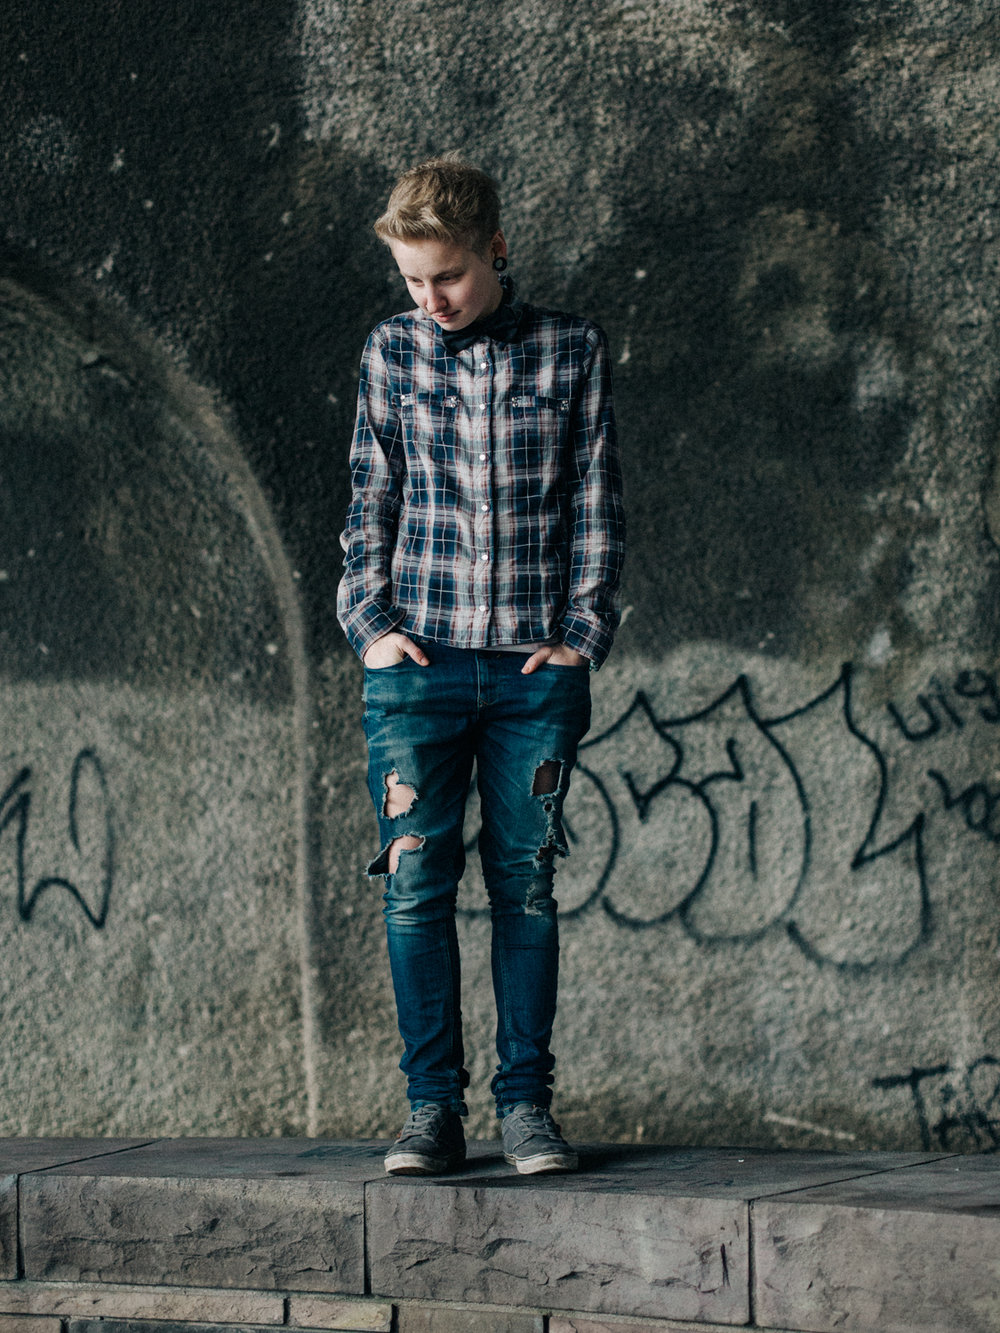 Finley, 18, Transgender male, Cologne, Germany